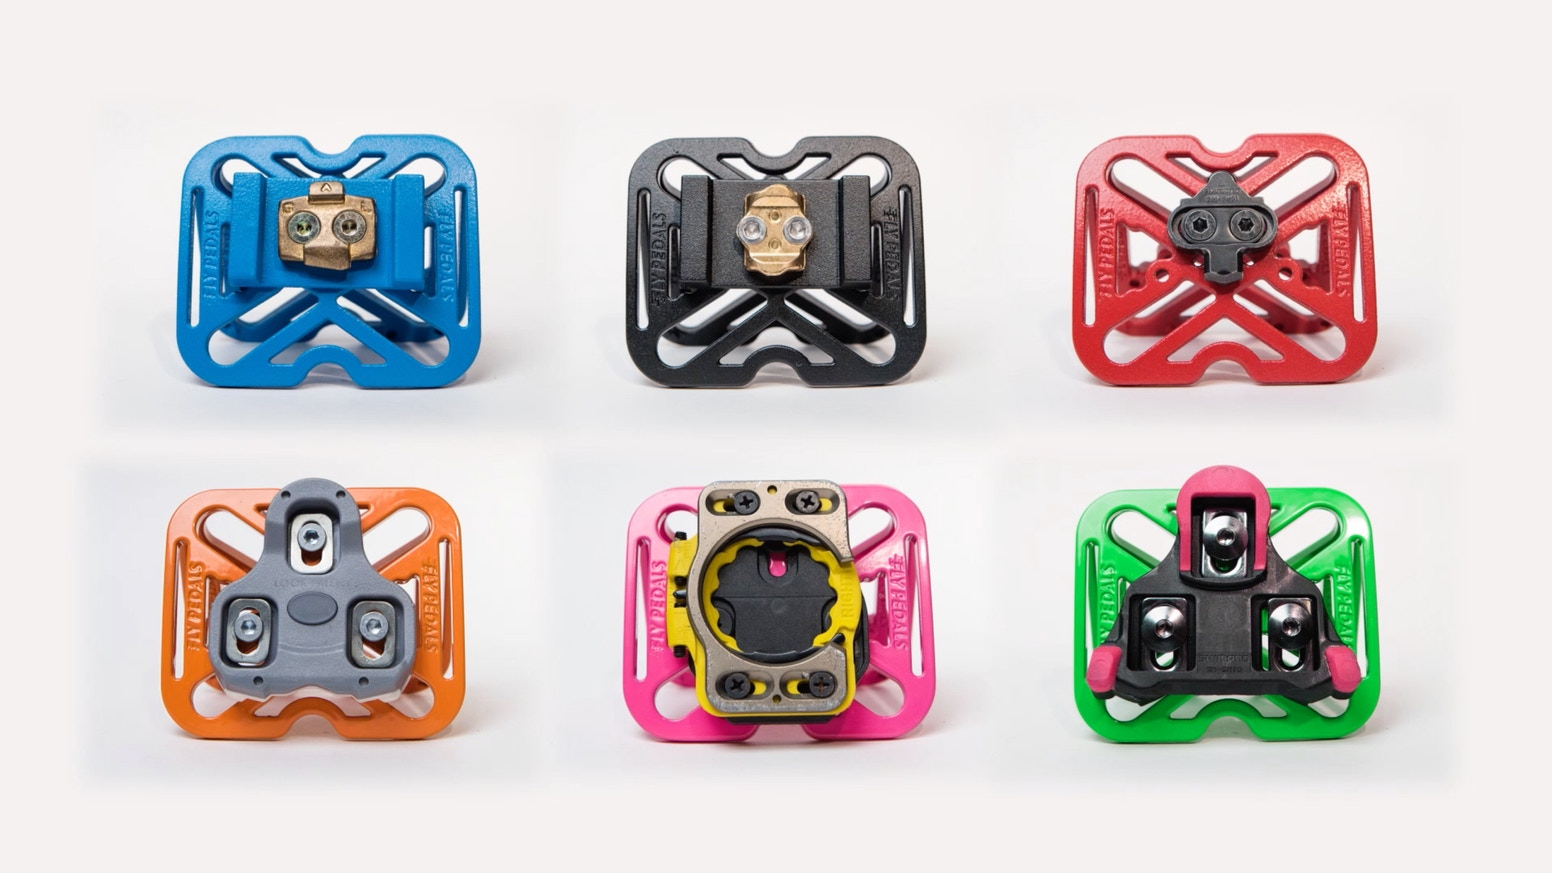 58bbc4ffecf Instantly convert clipless pedals to platform pedals for casual bike  riding. Now in six awesome